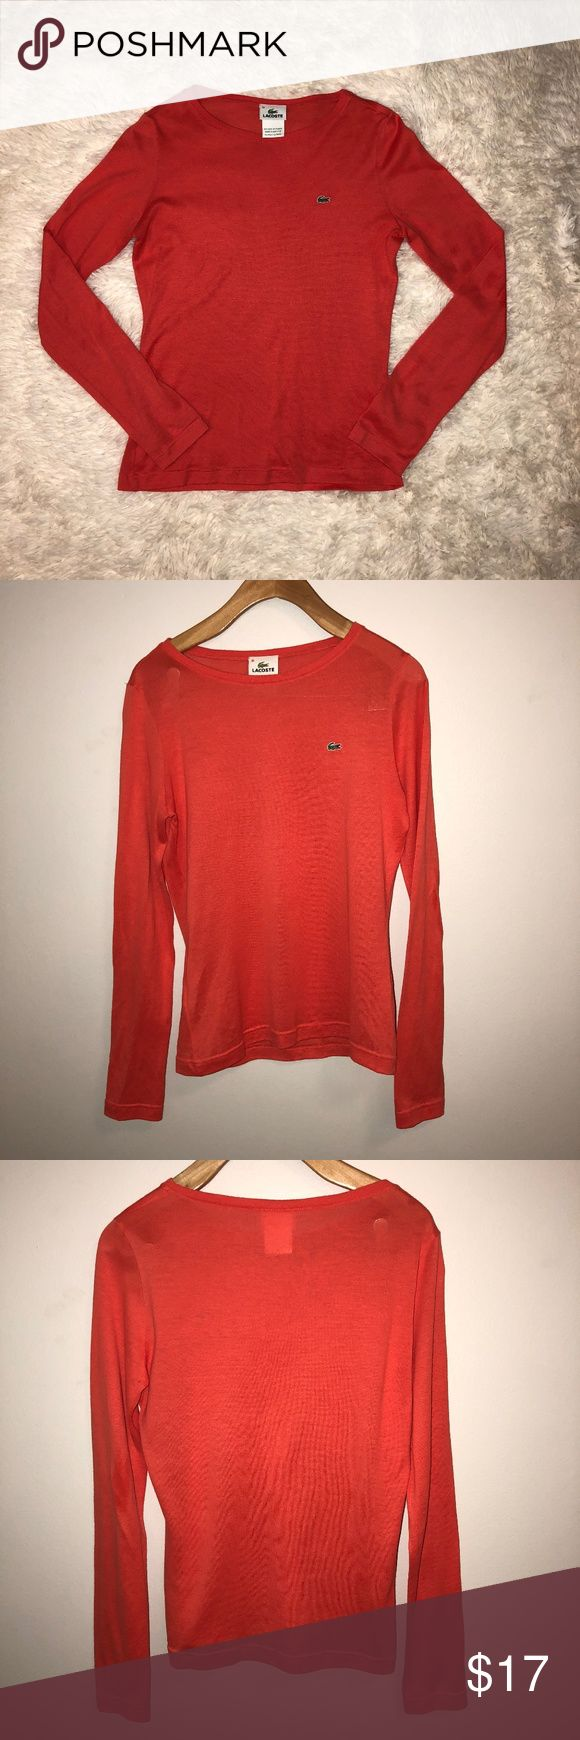 "LACOSTE Women's Long Sleeve Salmon T-Shirt Size 38 LACOSTE T-SHIRT  -SIZE 38 -CREWNECK  -SALMON COLOR -FITTED  -LONG SLEEVE -100% COTTON  APPROXIMATE MEASUREMENTS: -23.5"" TOP TO BOTTOM -18"" ARMPIT TO ARMPIT -24.5"" SLEEVE LENGTH  PRE-OWNED. EXCELLENT CONDITION. Lacoste Tops Tees - Short Sleeve"